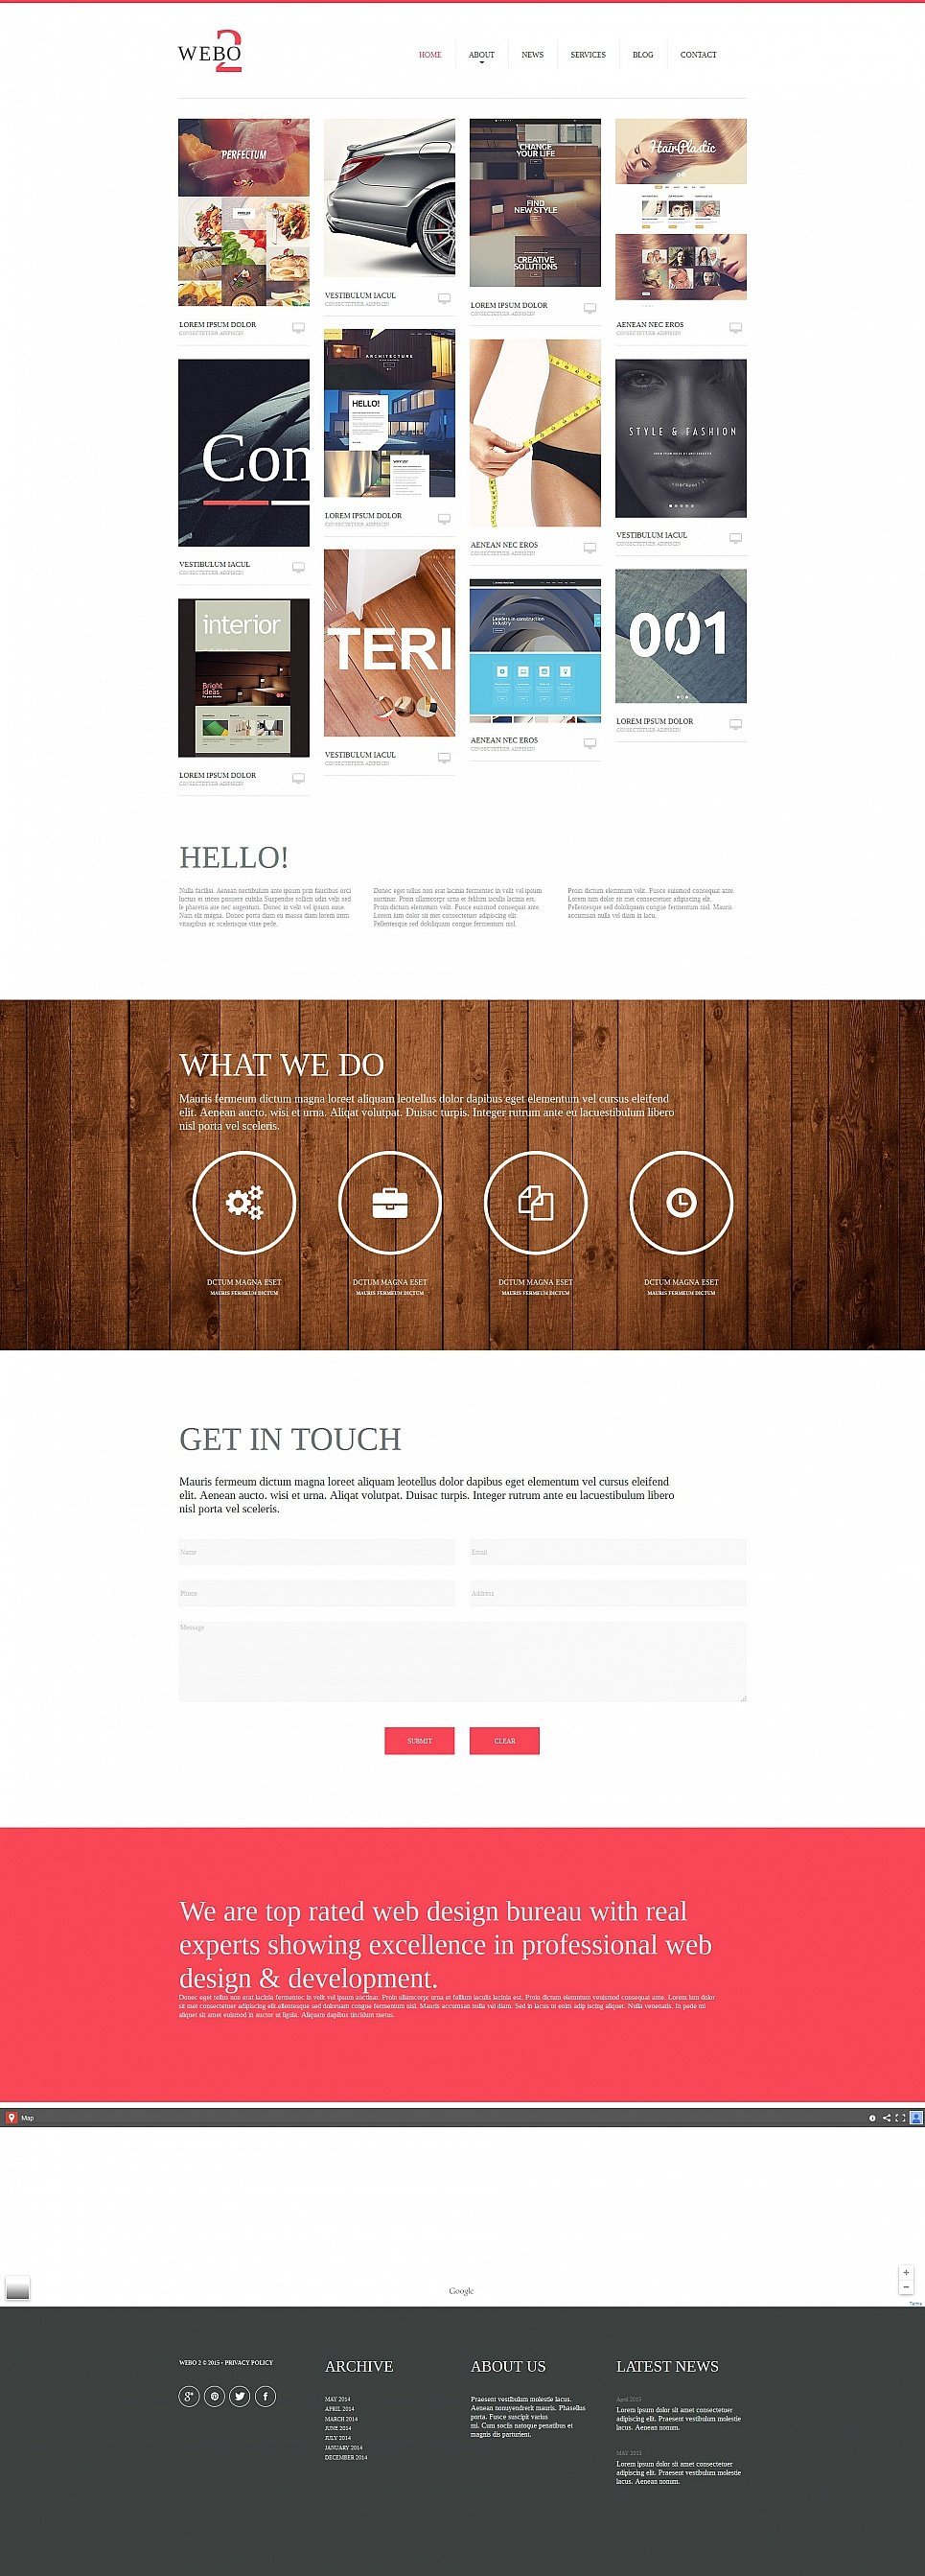 Web Design Site with Grid Catalog - image